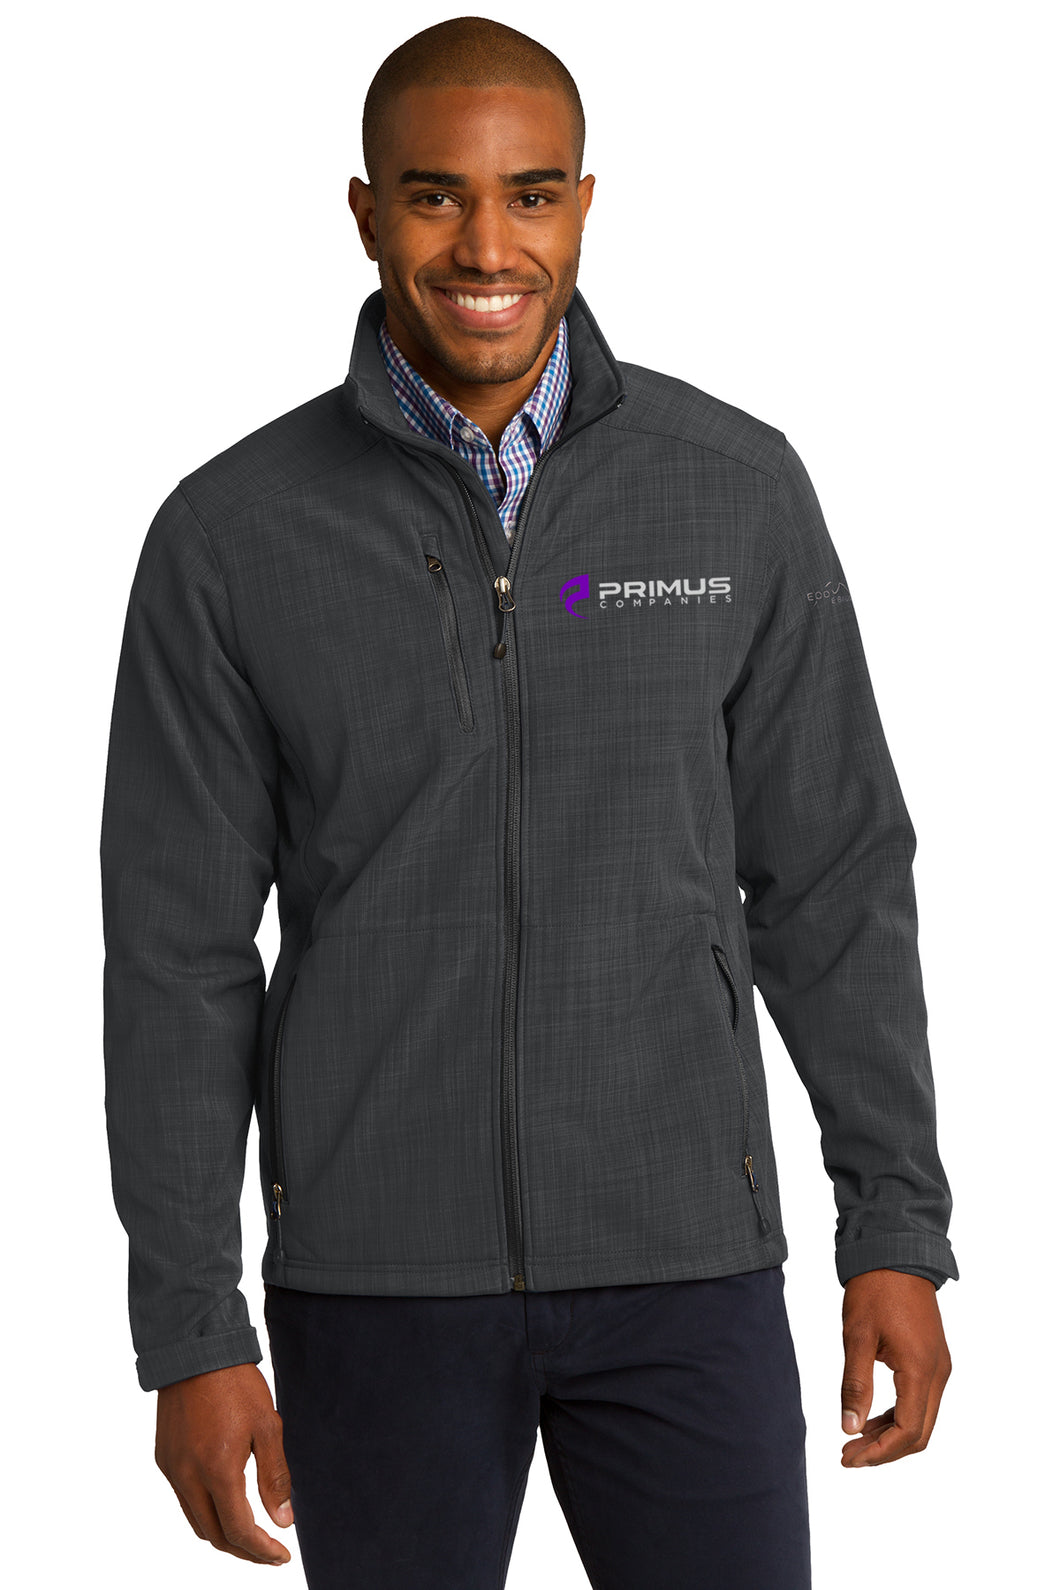 Eddie Bauer Shaded Crosshatch Soft Shell Jacket (EB532)